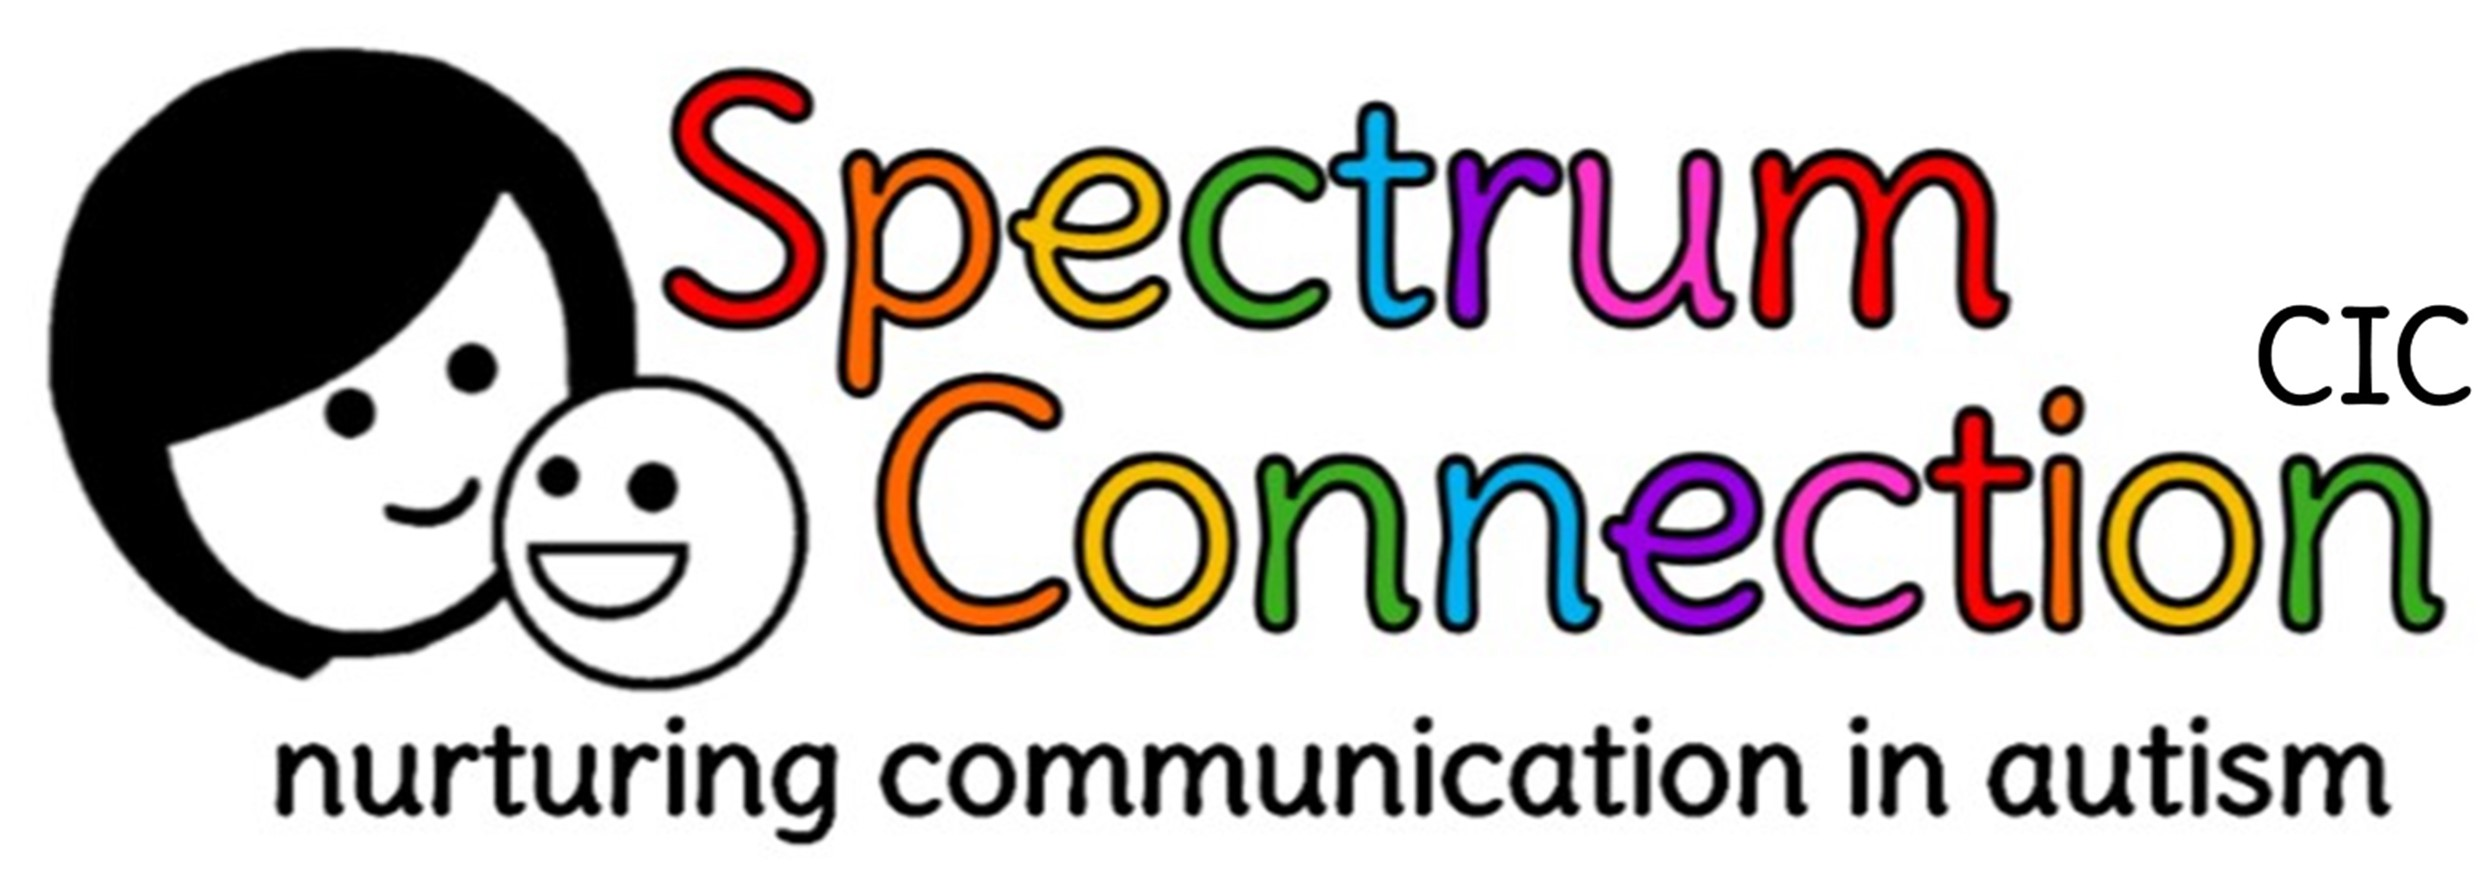 Spectrum Connection